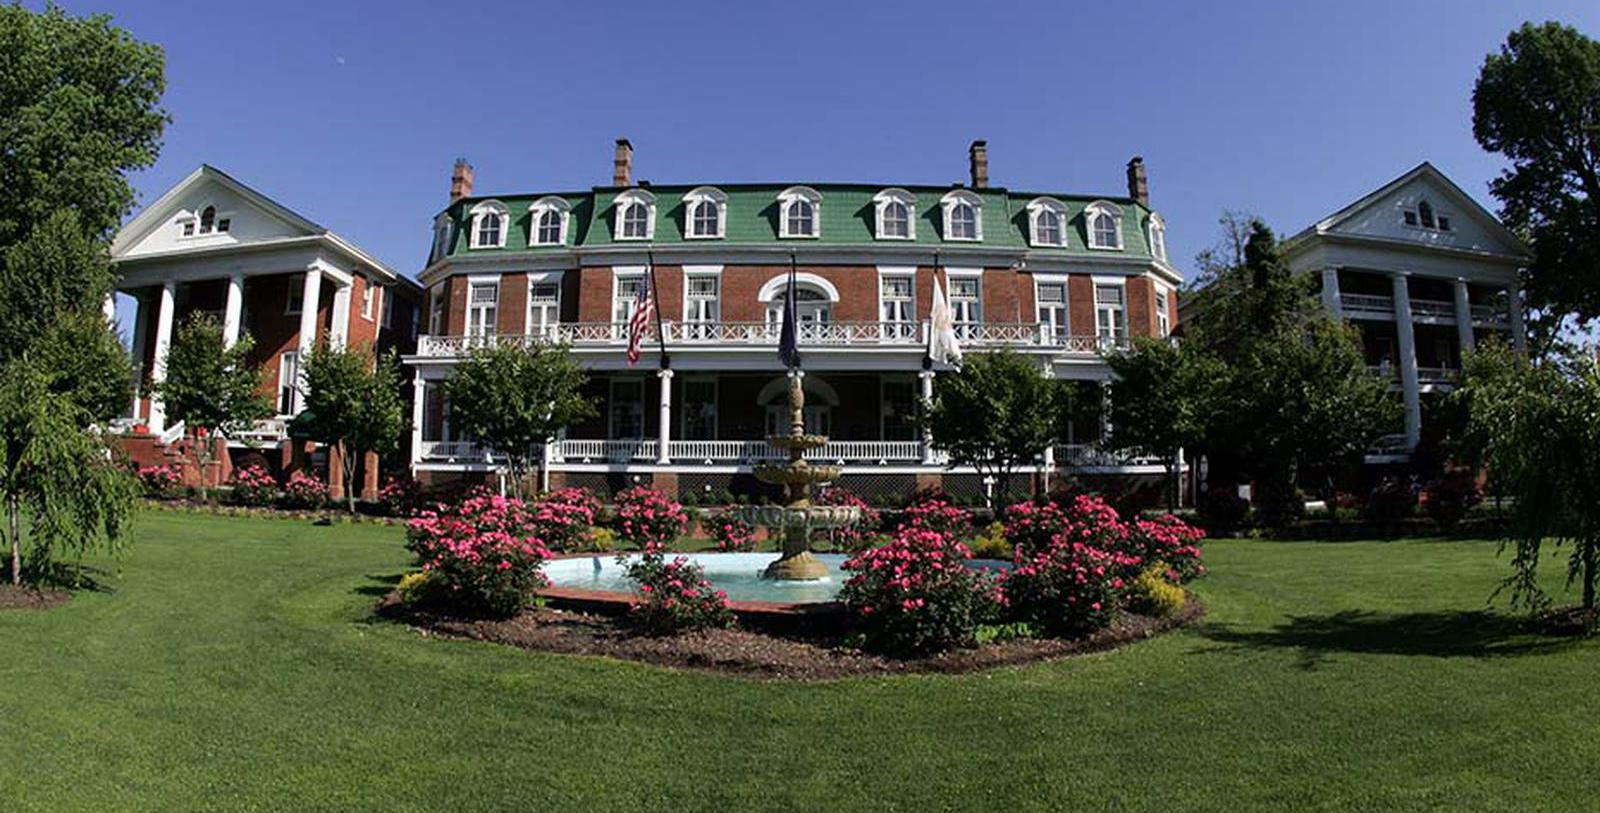 The Martha Washington Hotel & Spa